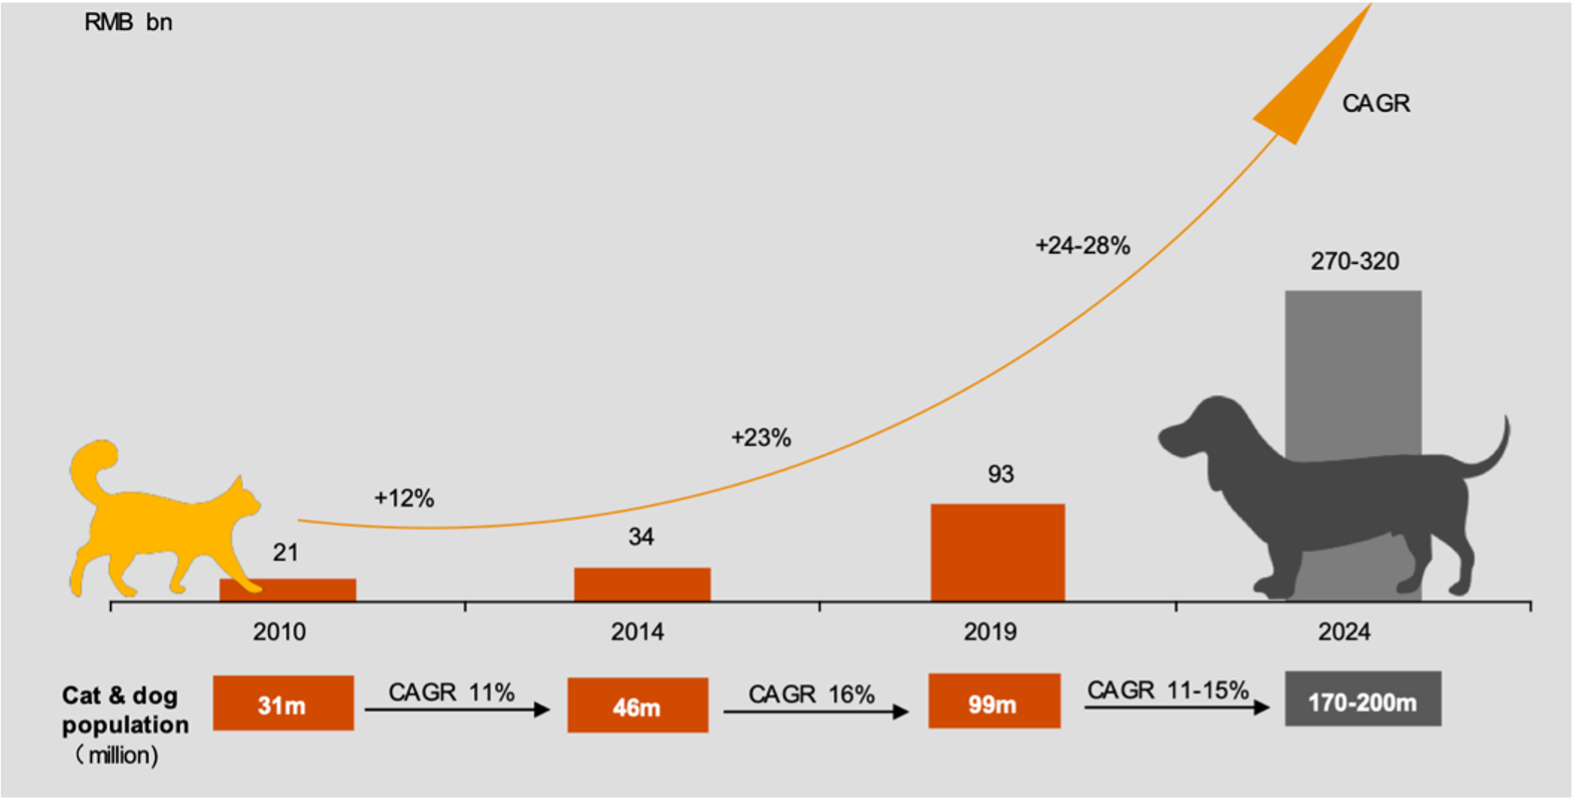 the retail value of China's pet (cat &dog) market from 2010 to 2024